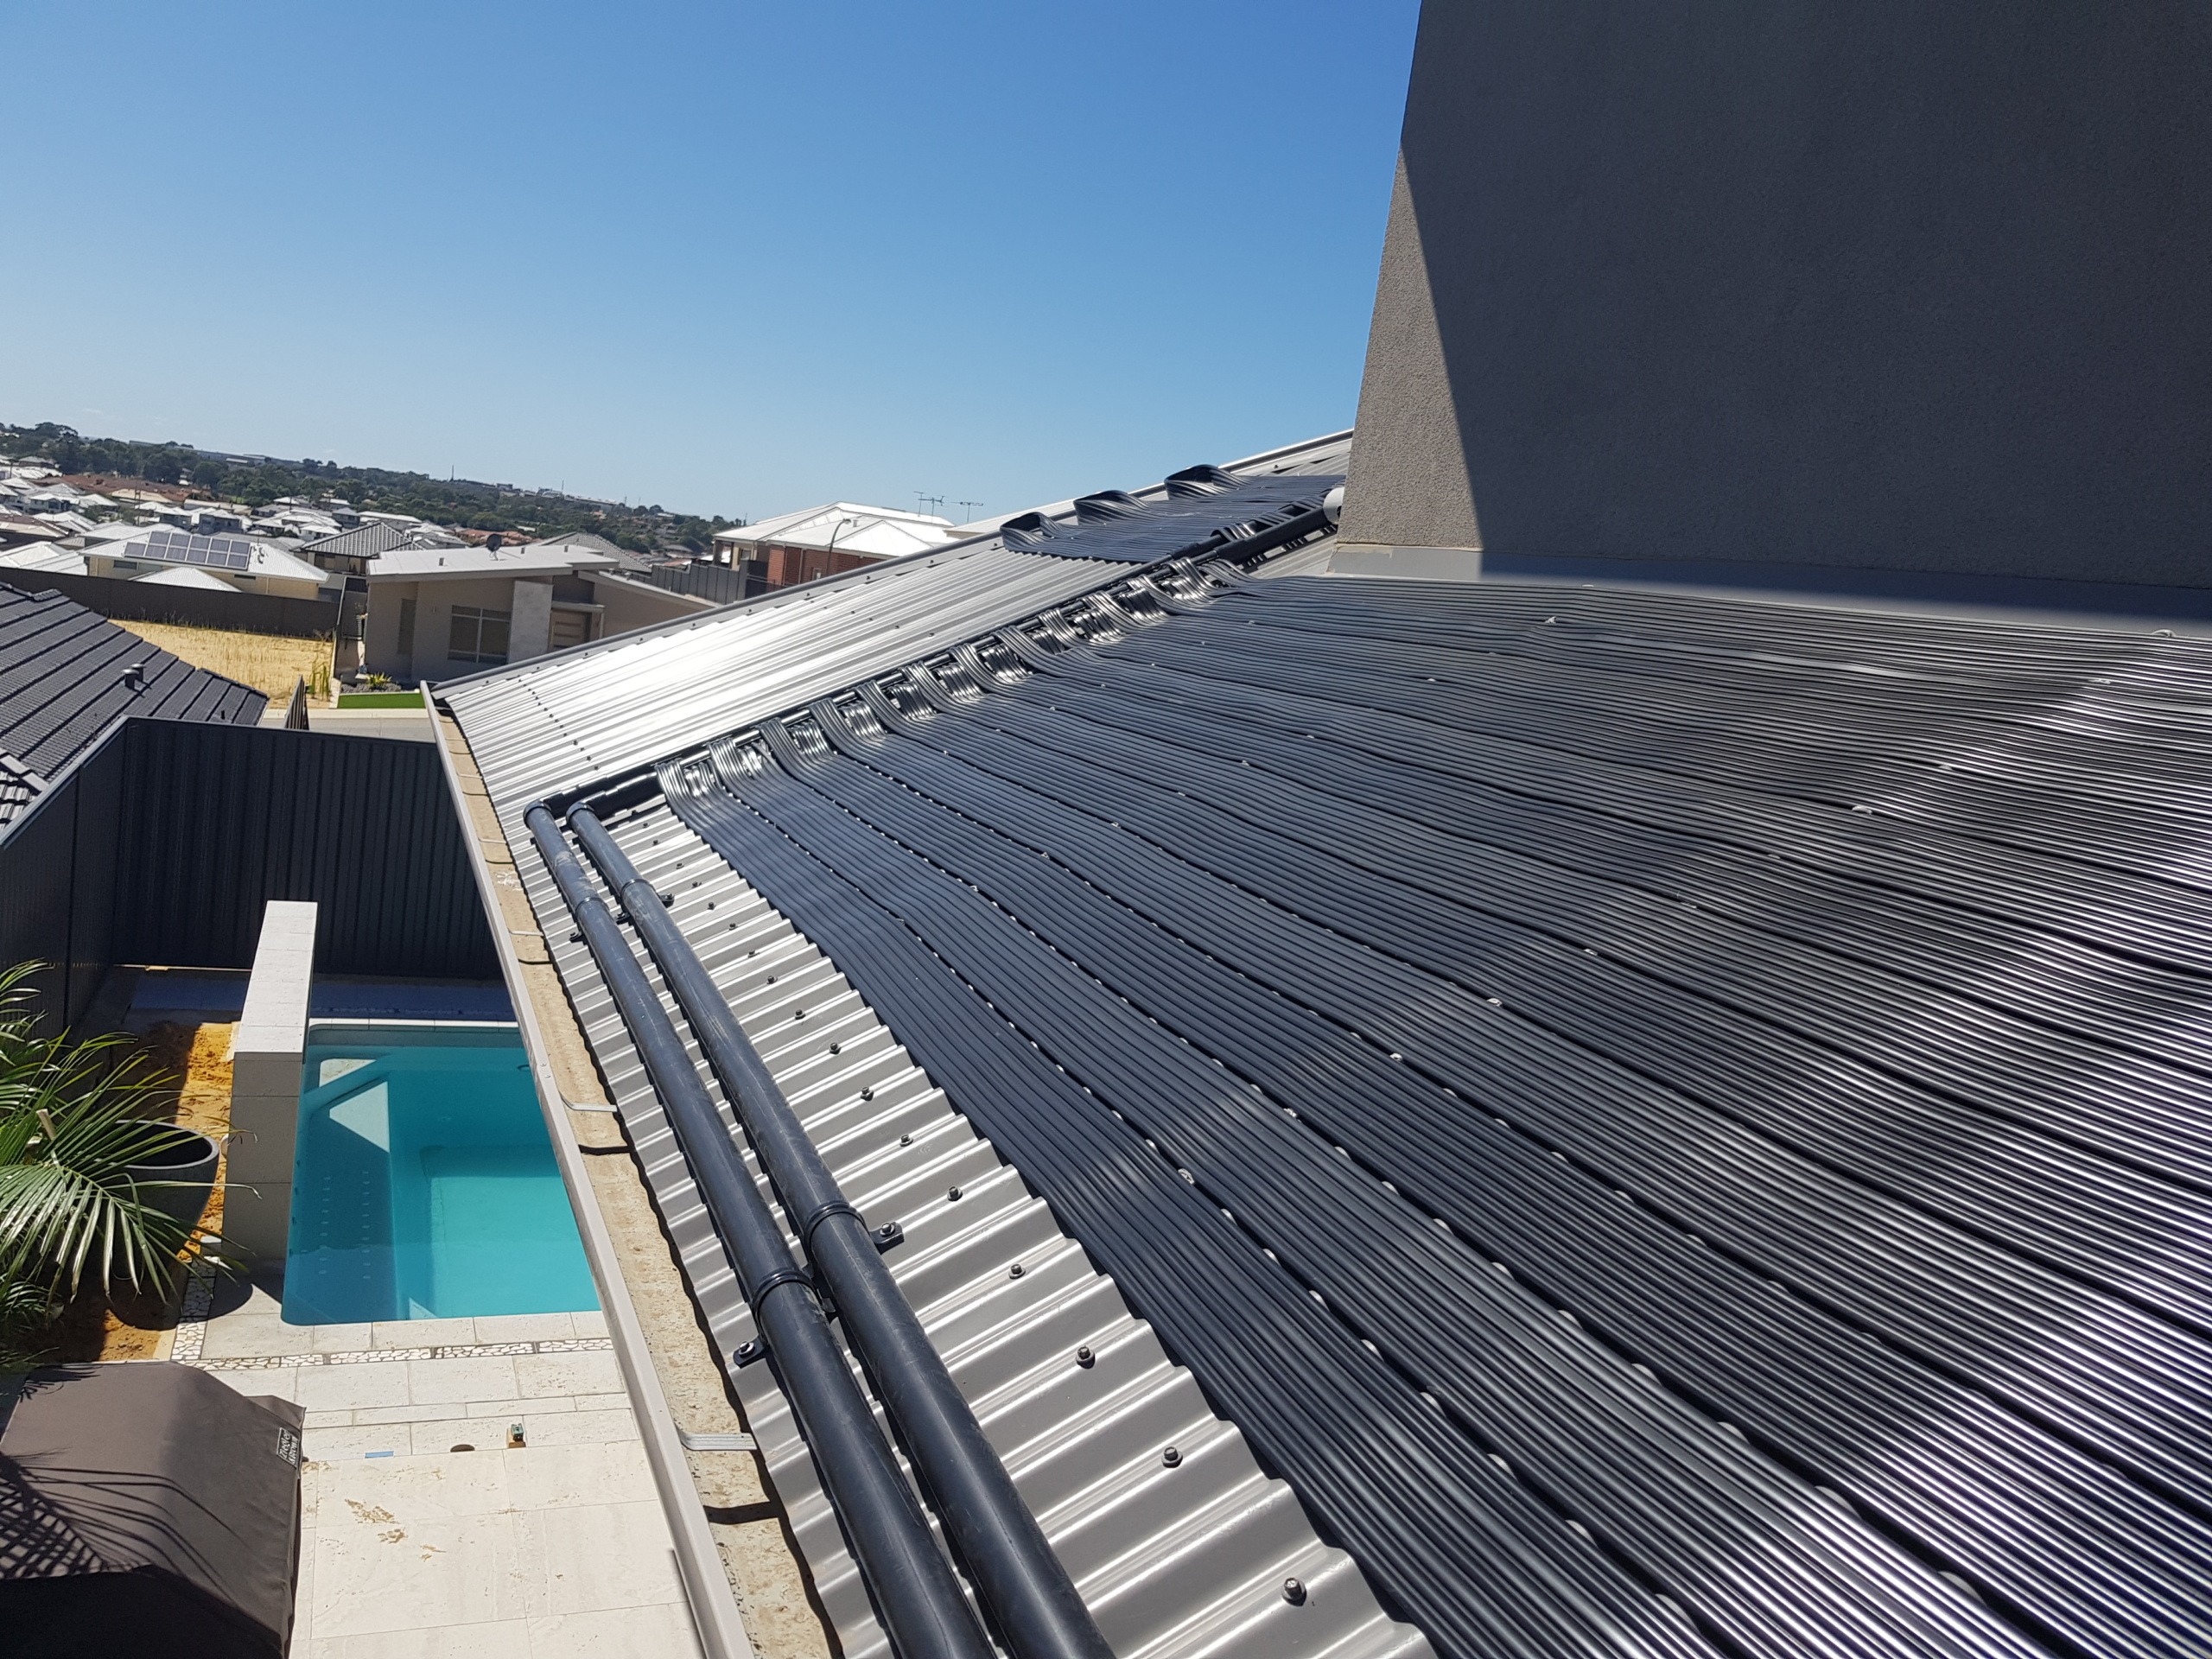 Swimming pool heated with solar power in Coogee